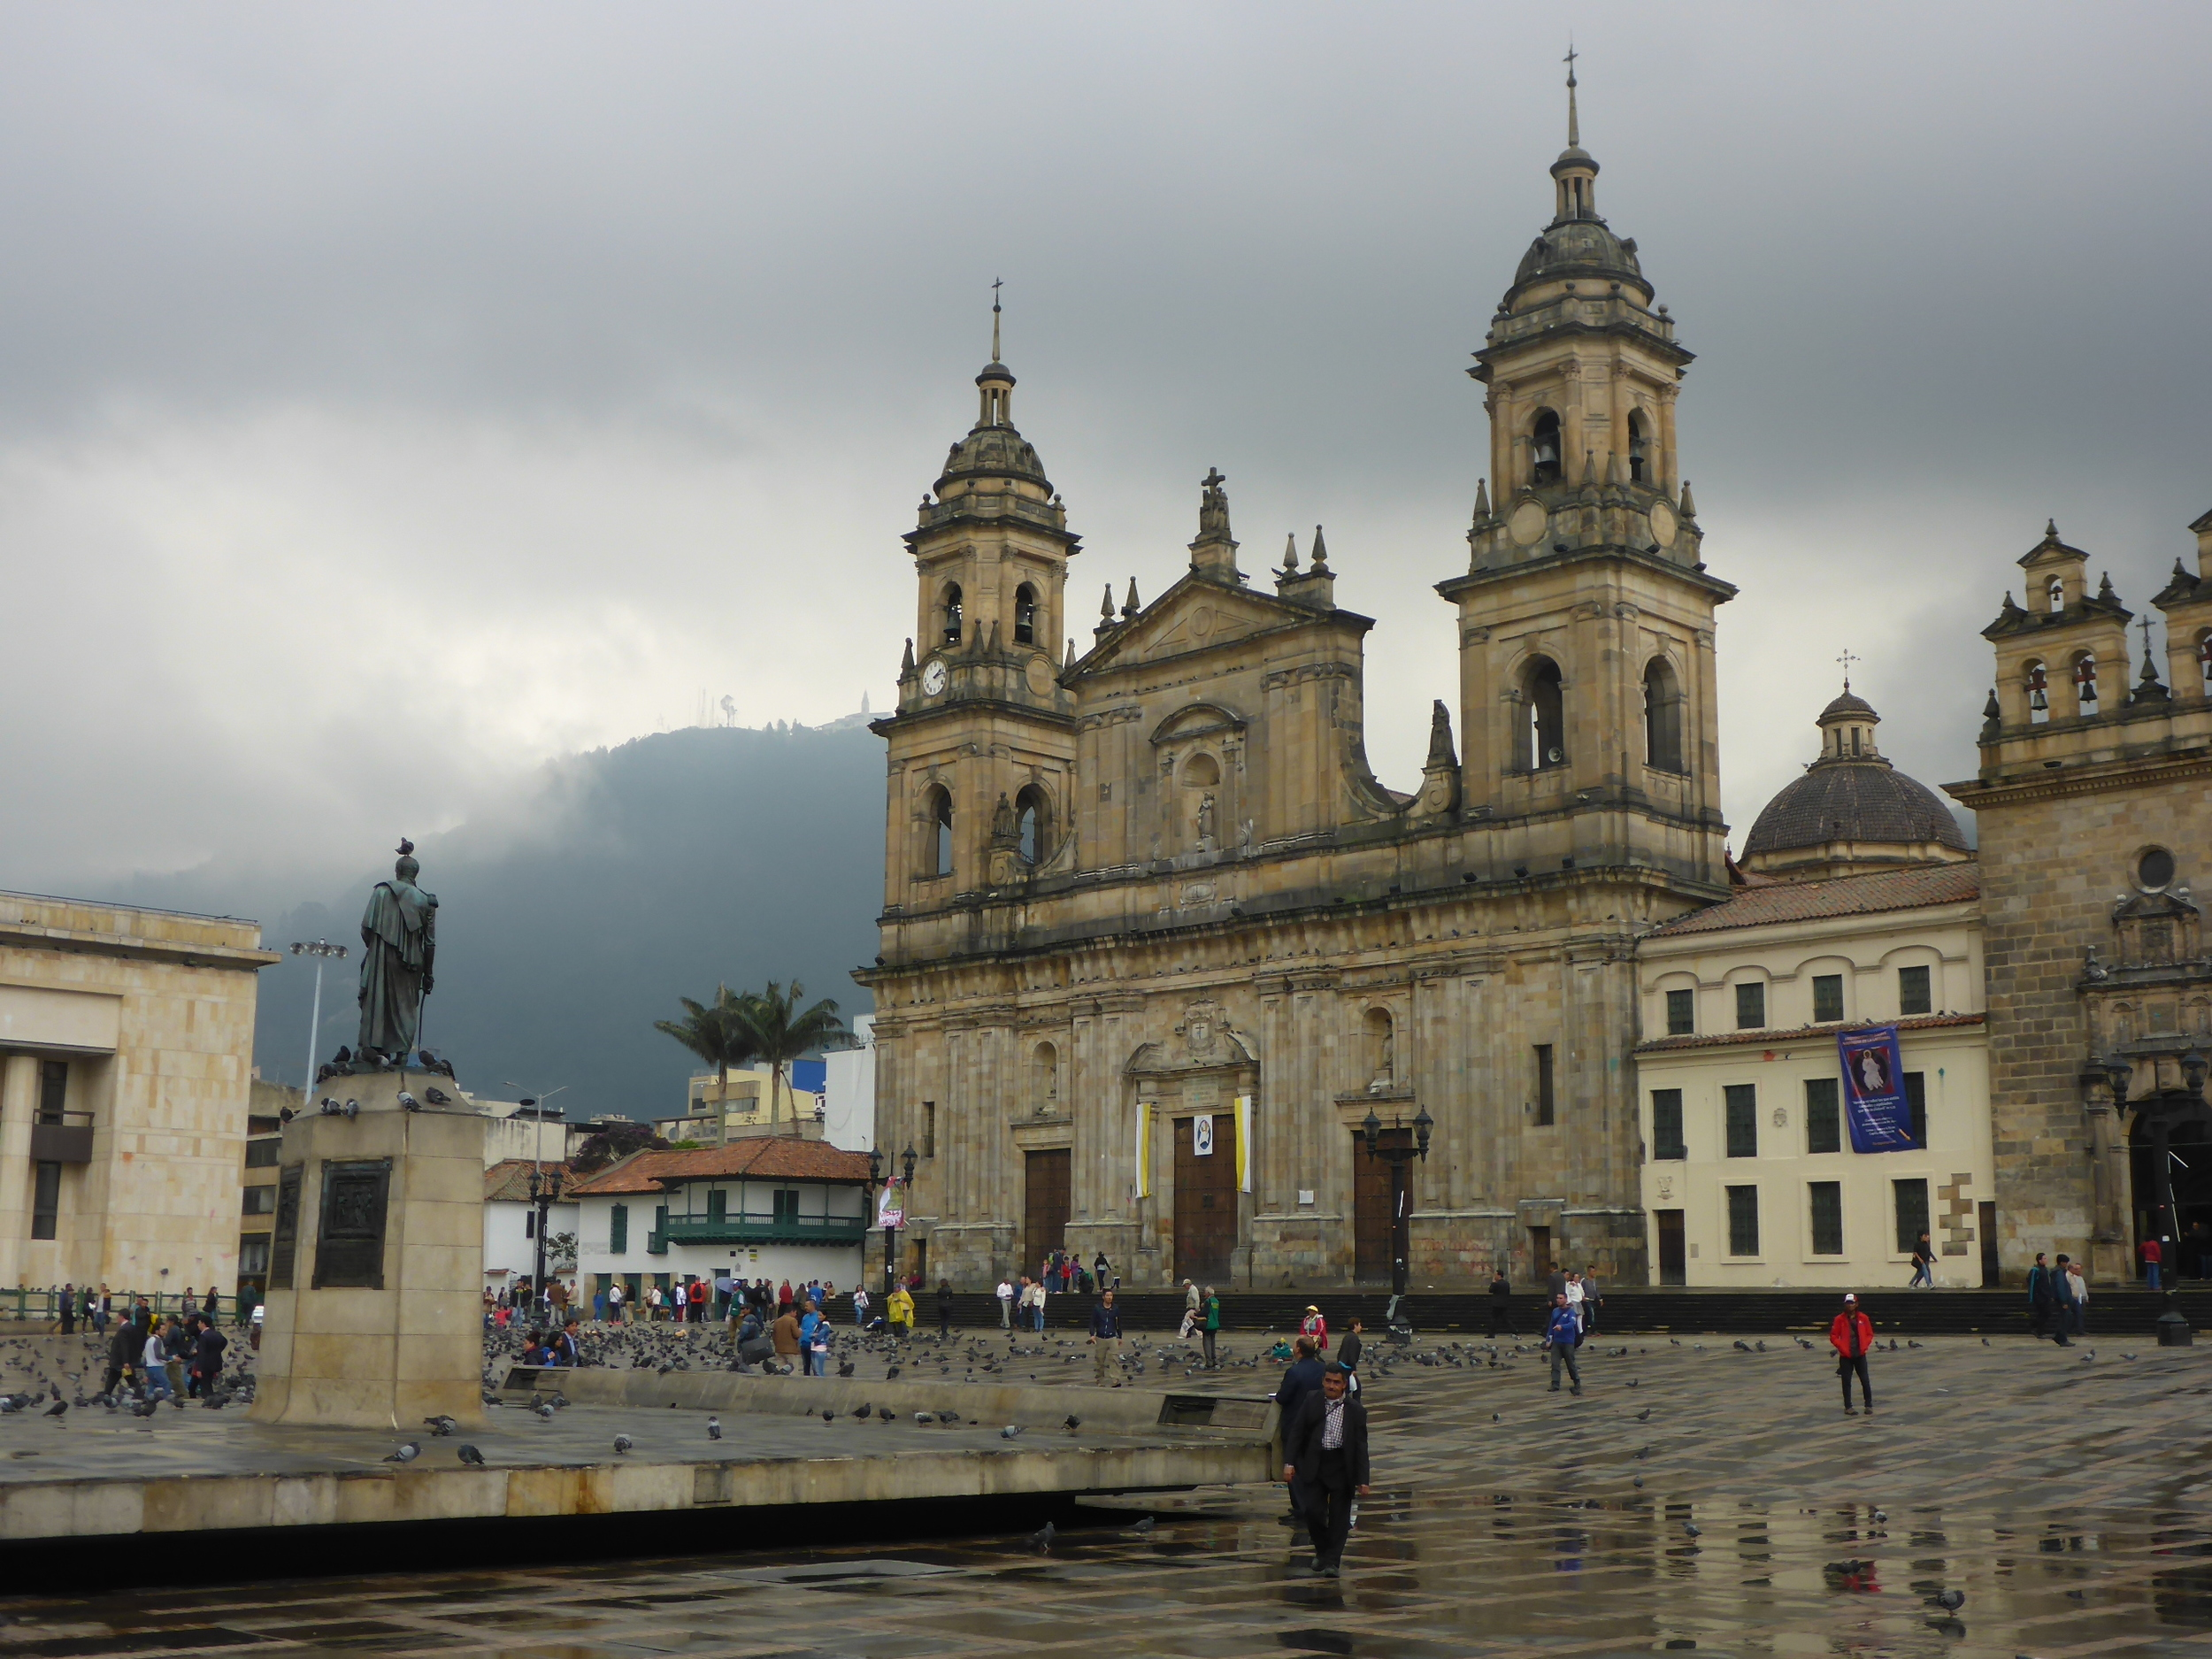 the cathedral, plaza bolivar